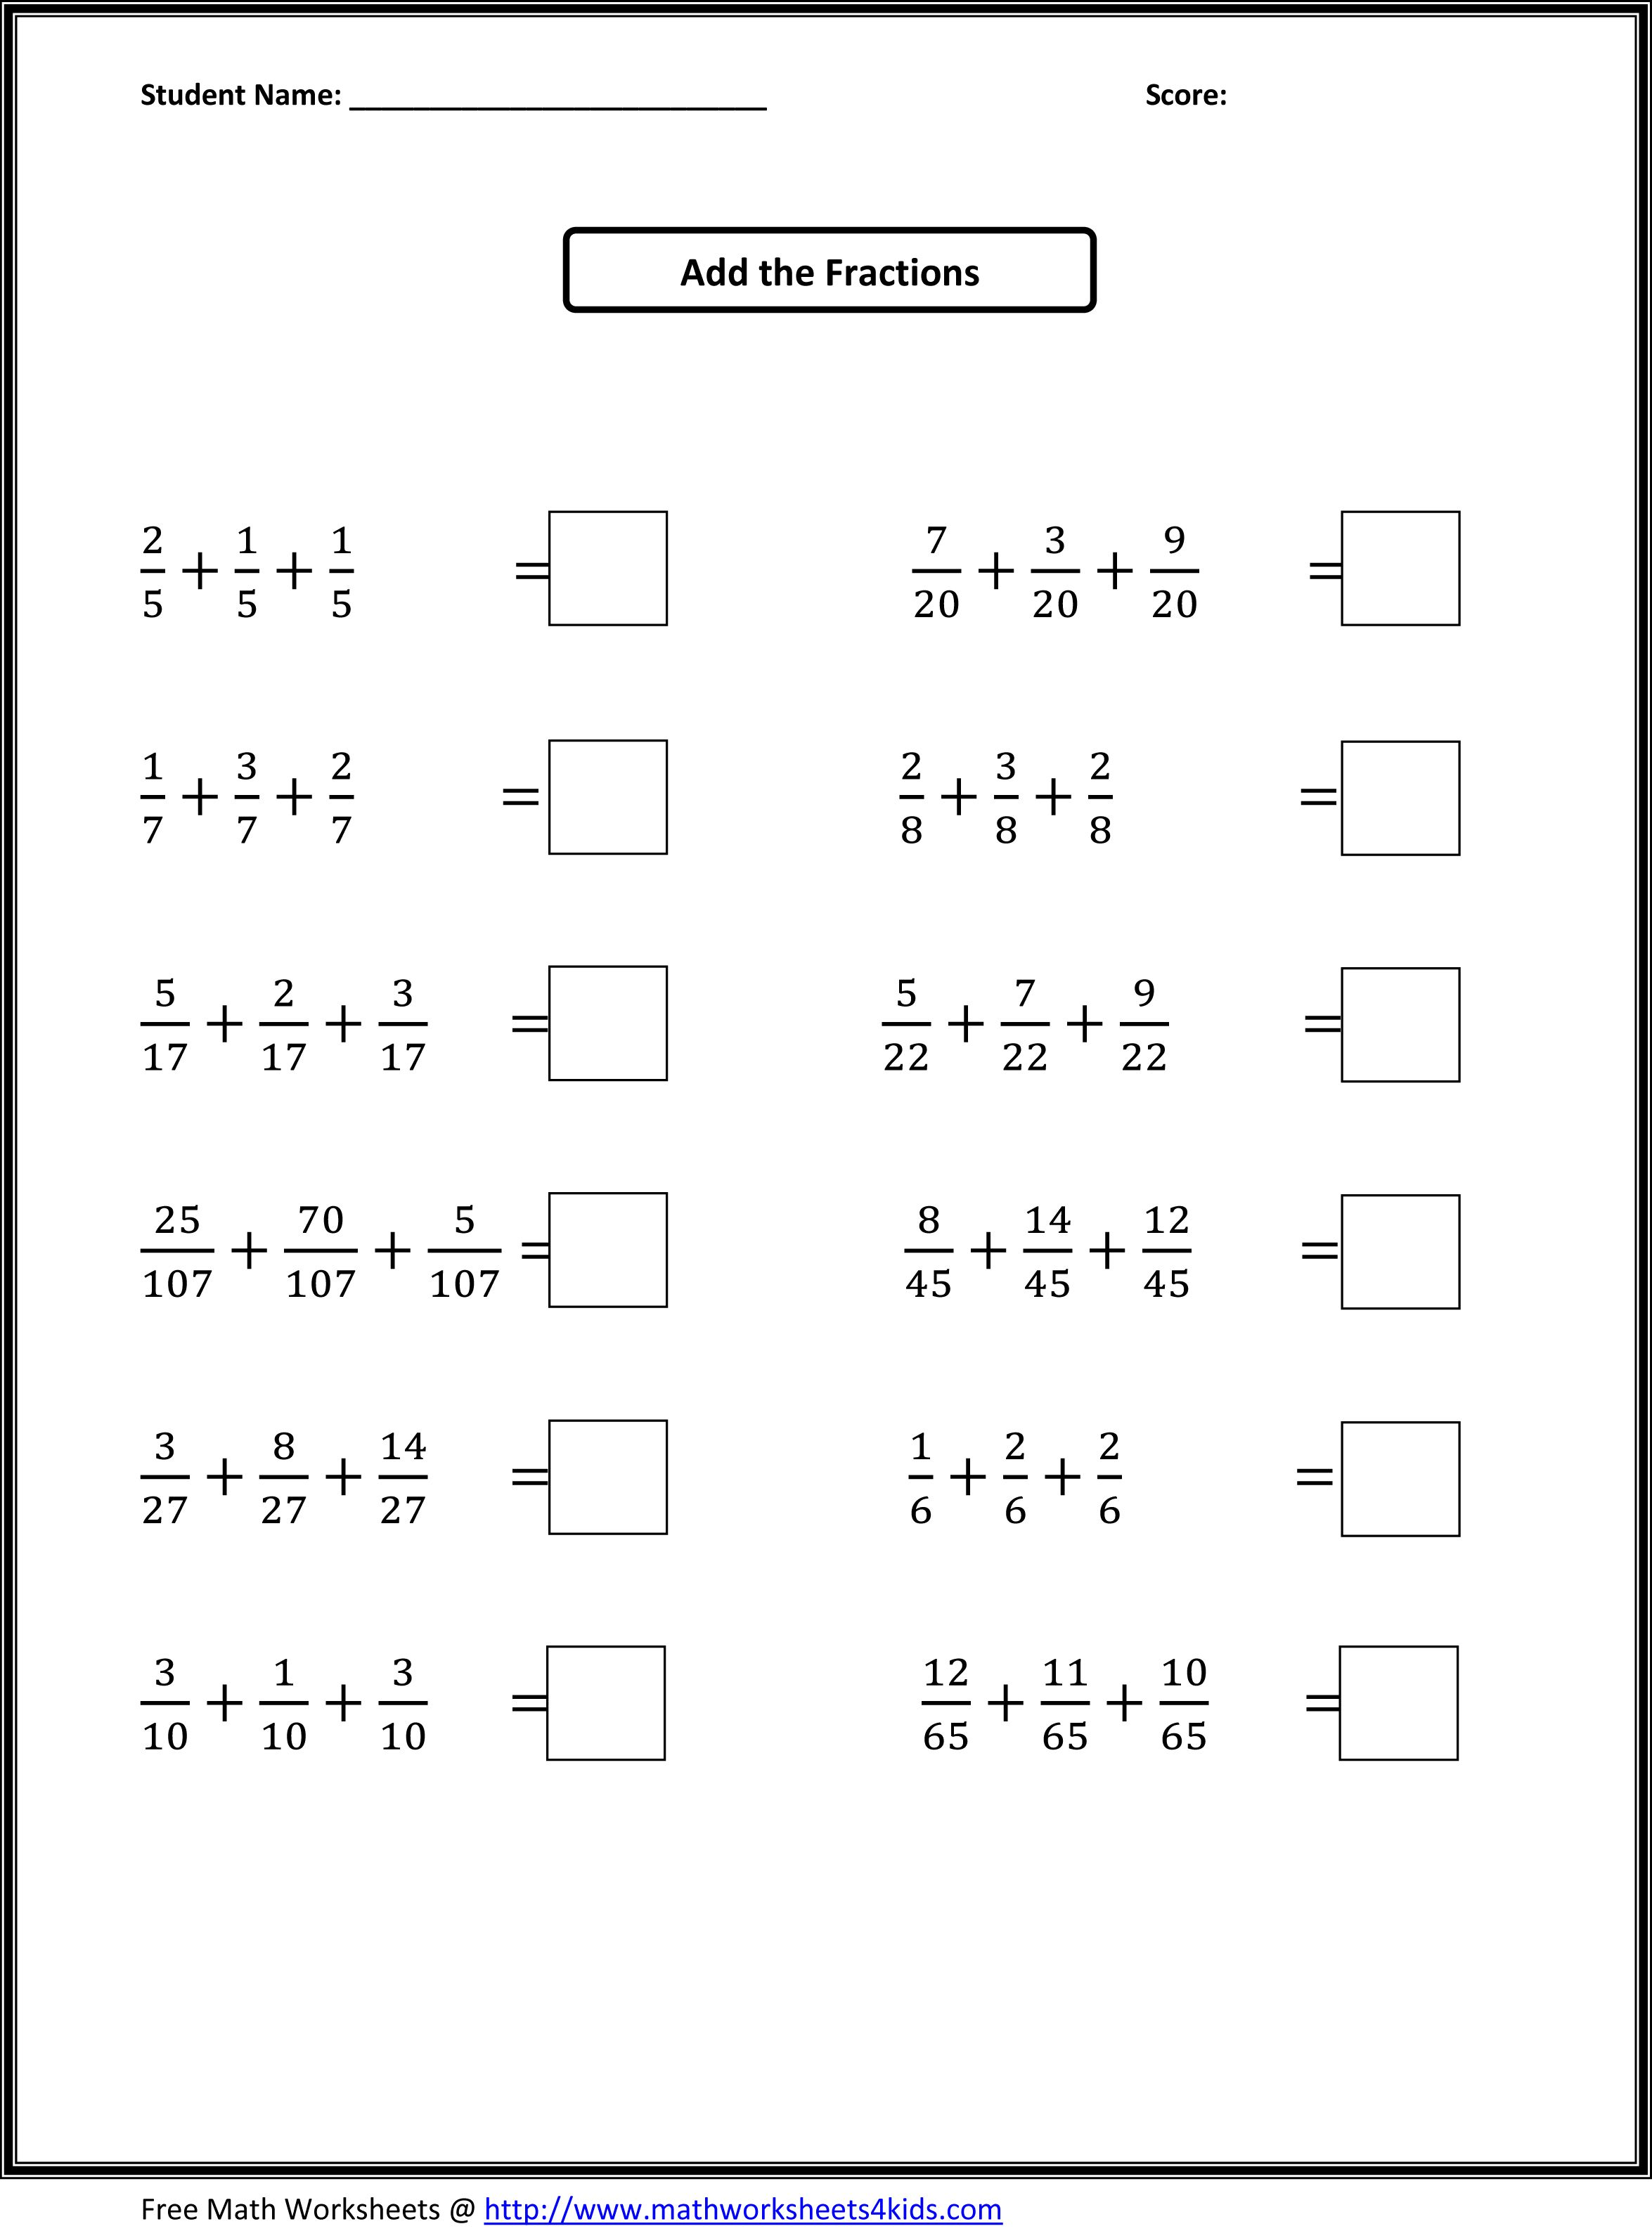 Worksheets for all early ed grades All topics of math – Printable Math Worksheets for Grade 4